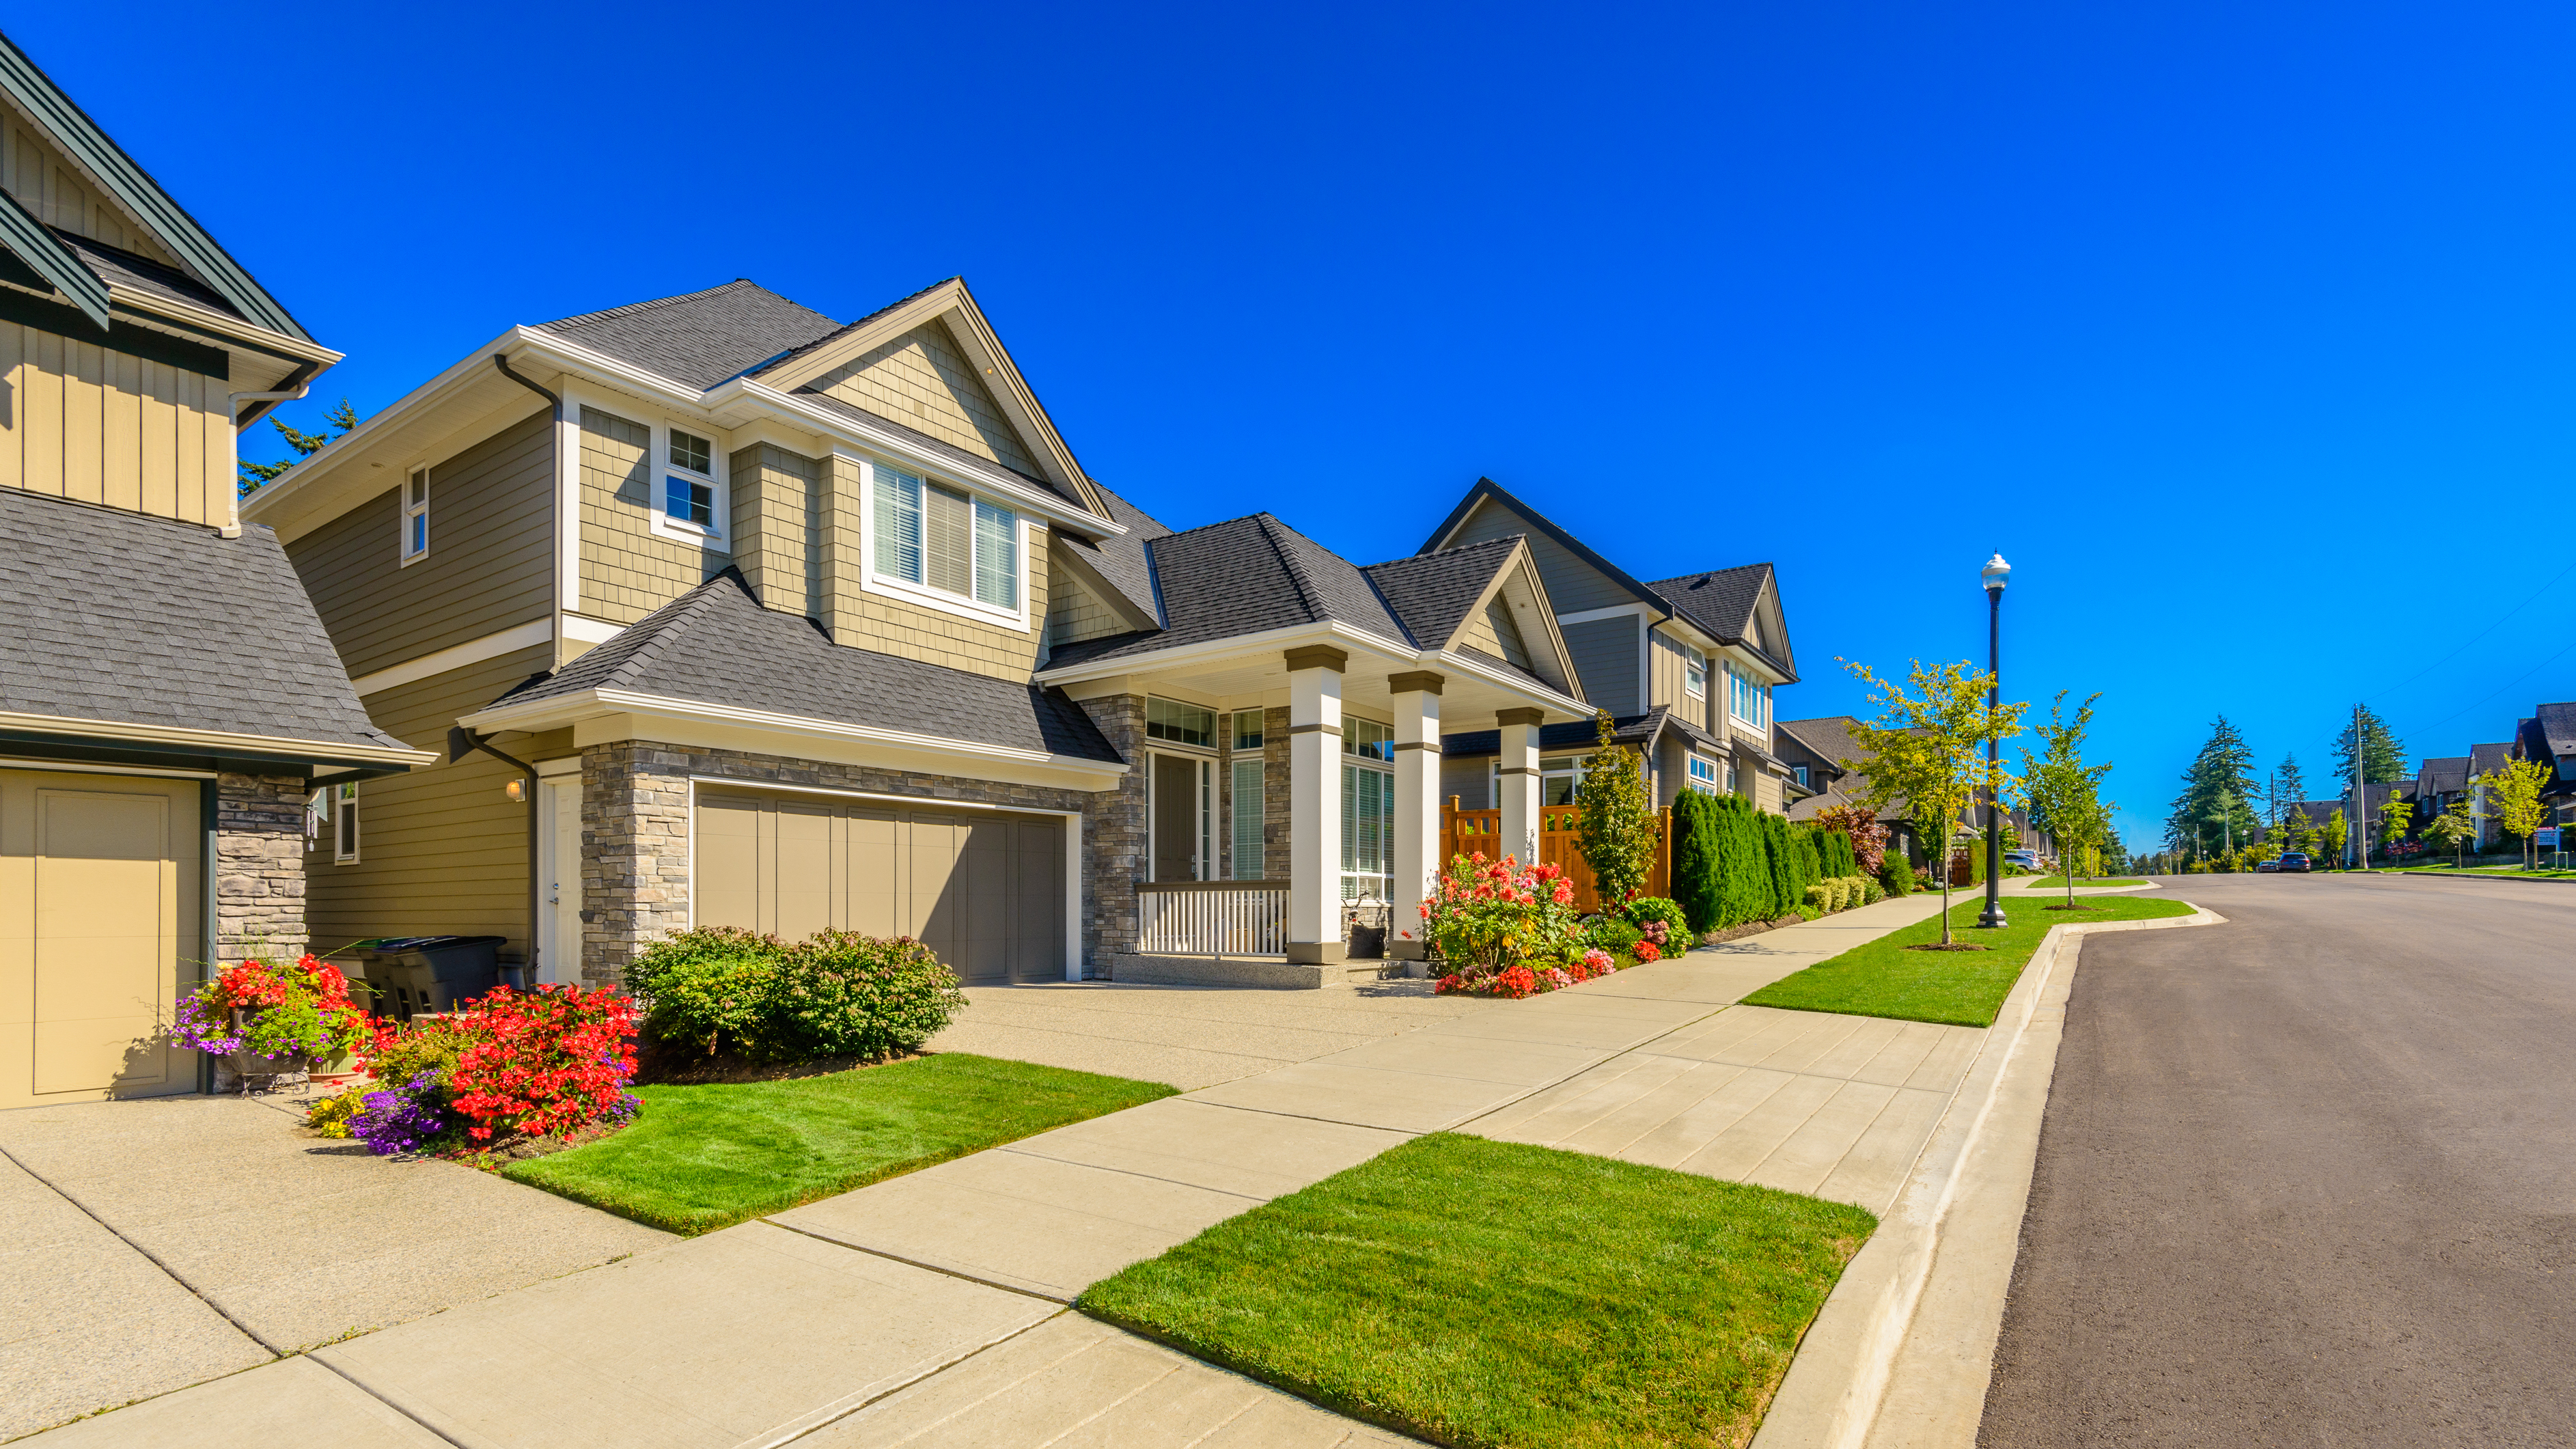 [Article Image] - 10 Easy Ways To Raise Your Neighborhood's Value